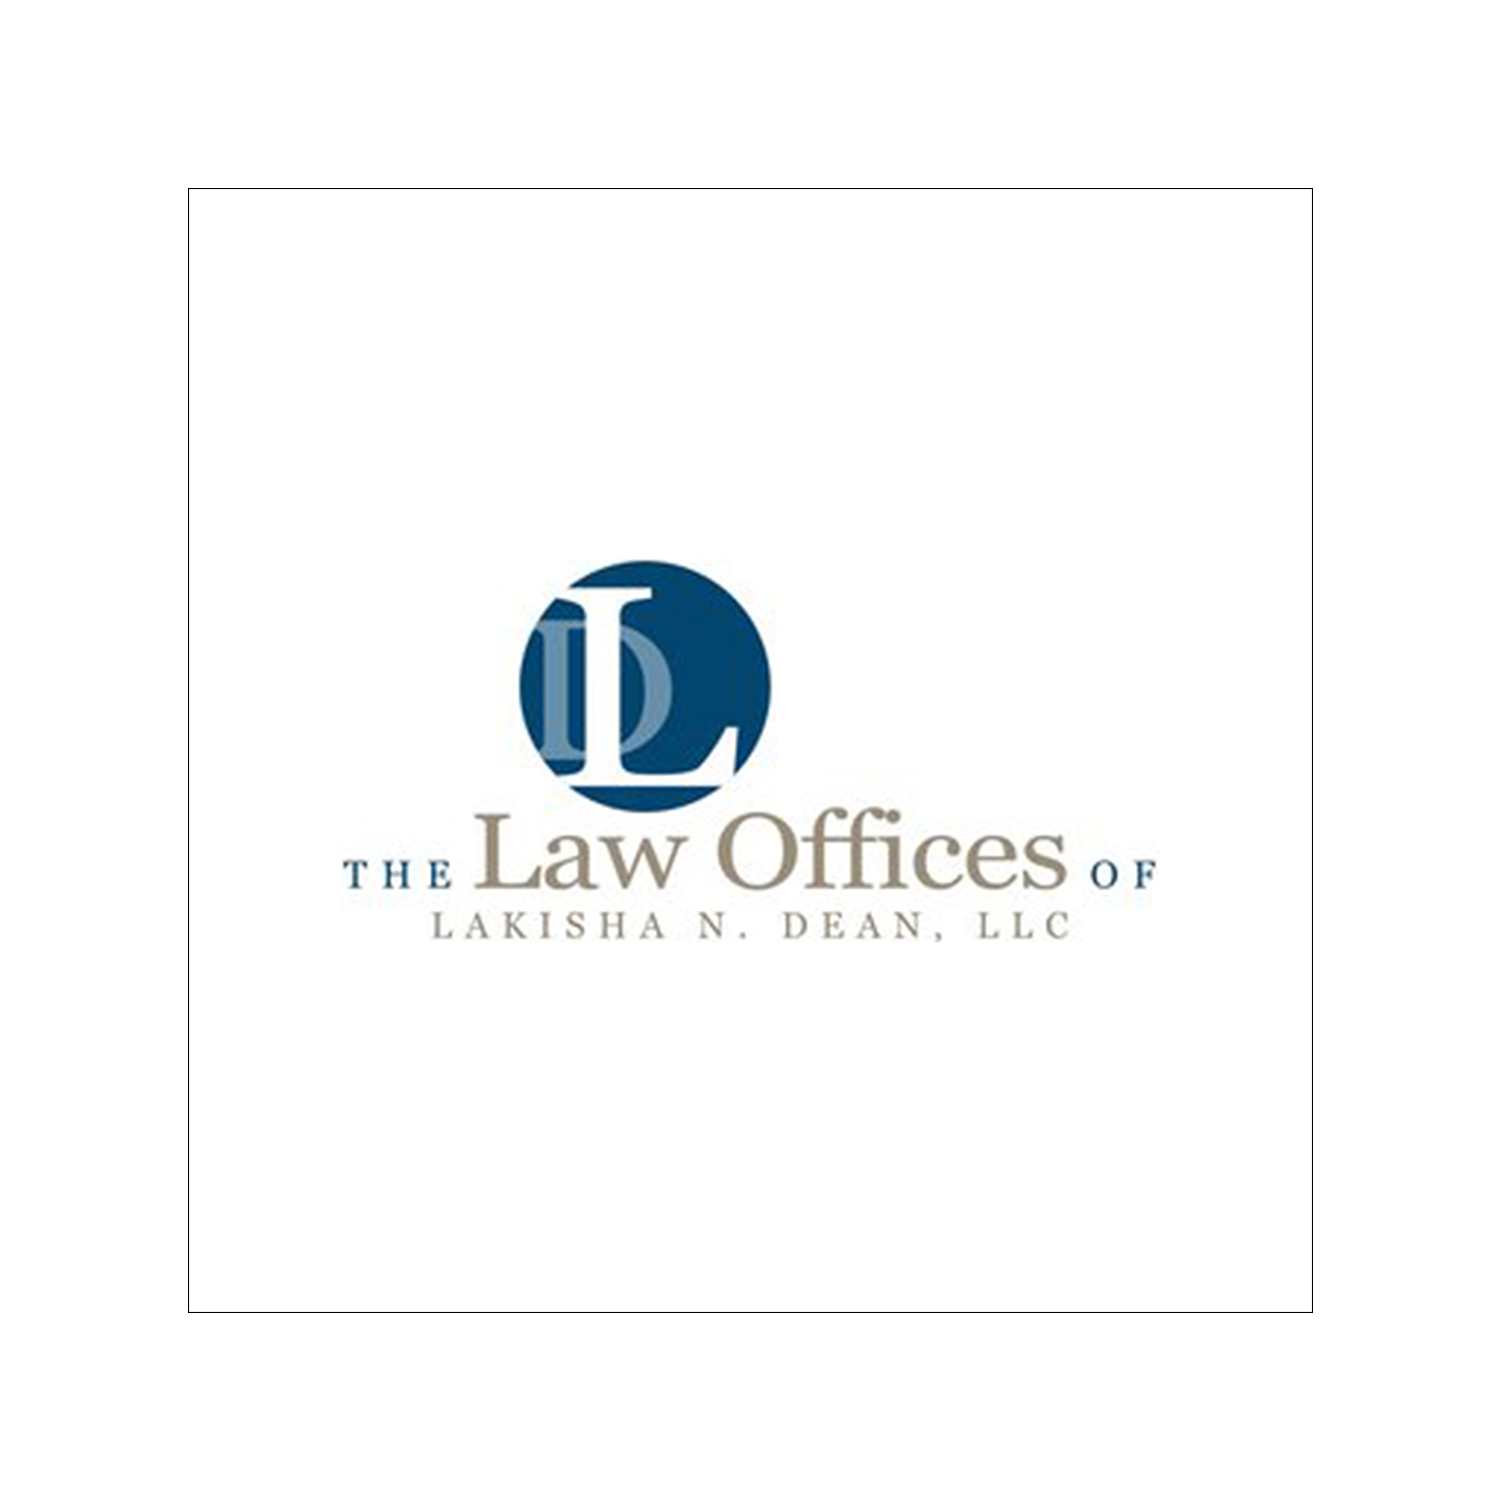 The Law Offices of Lakisha N. Dean